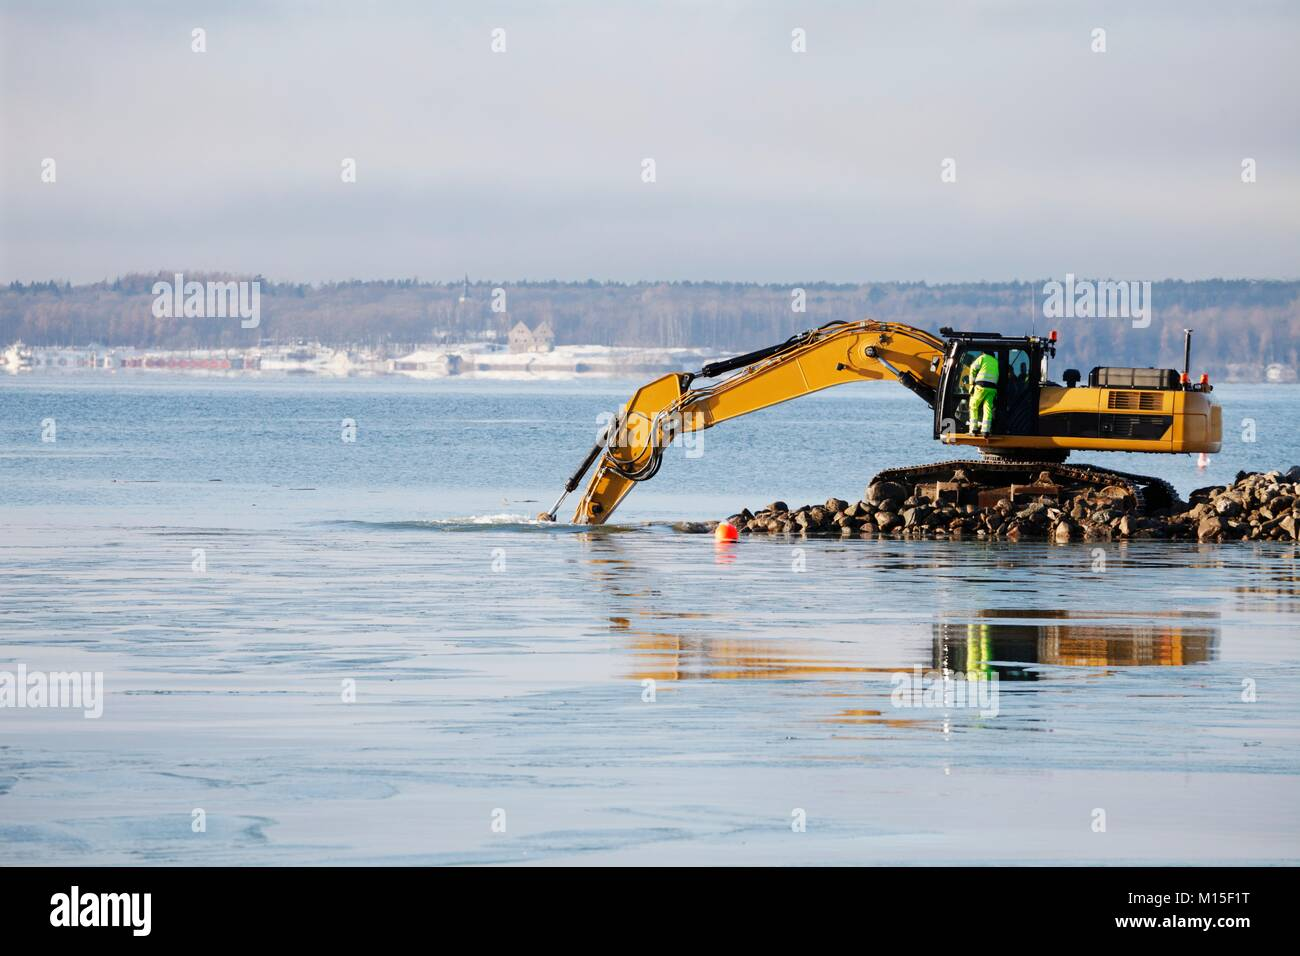 Bulldozer excavating rocks from the sea. - Stock Image